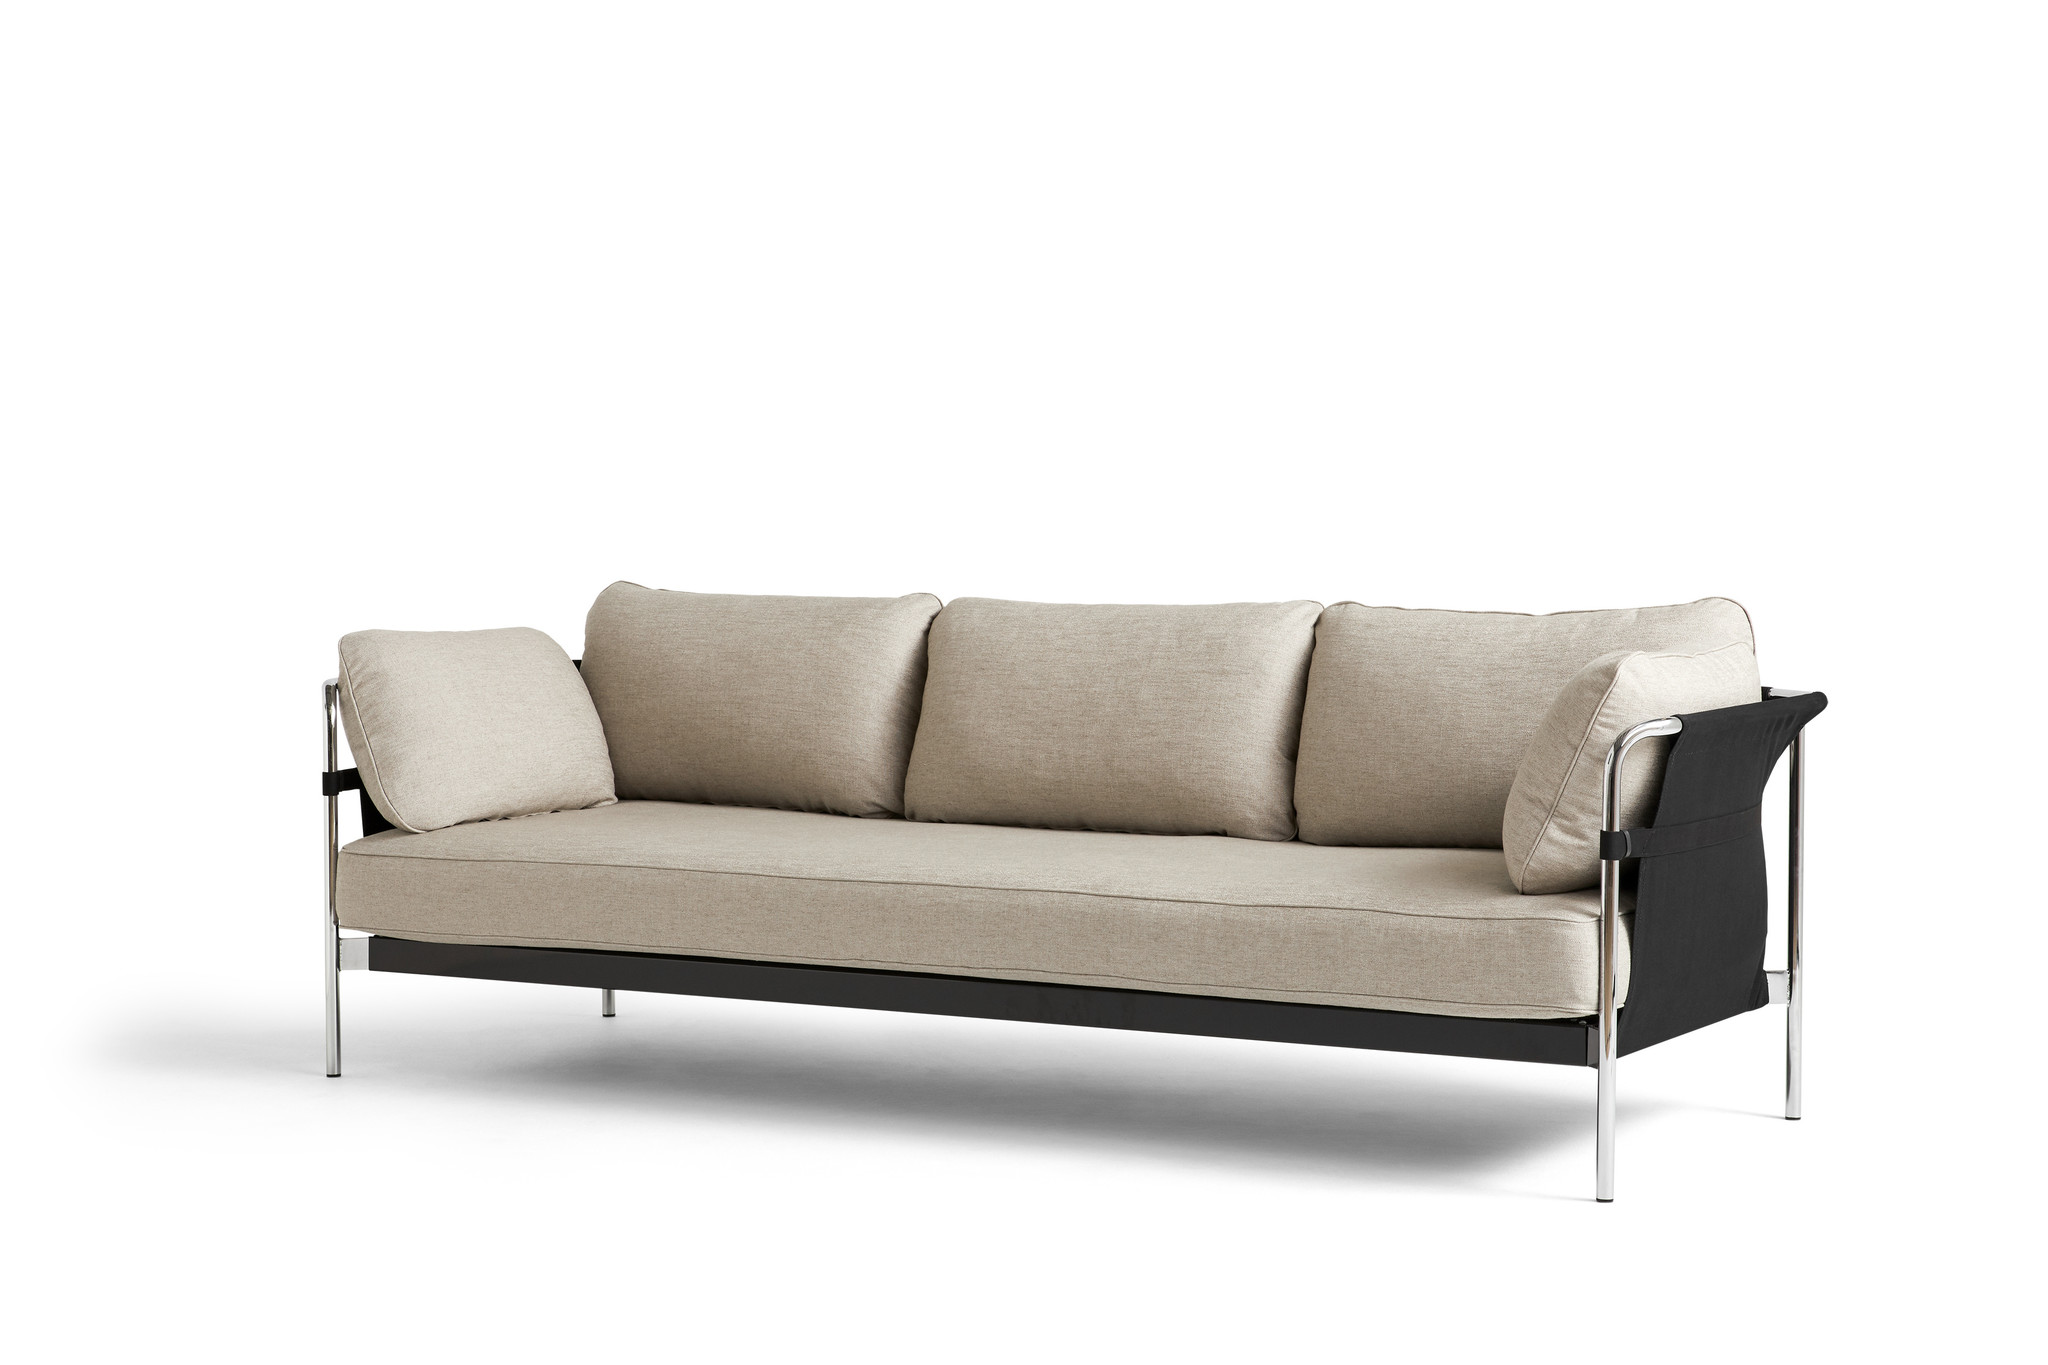 Can 3 Seater-4